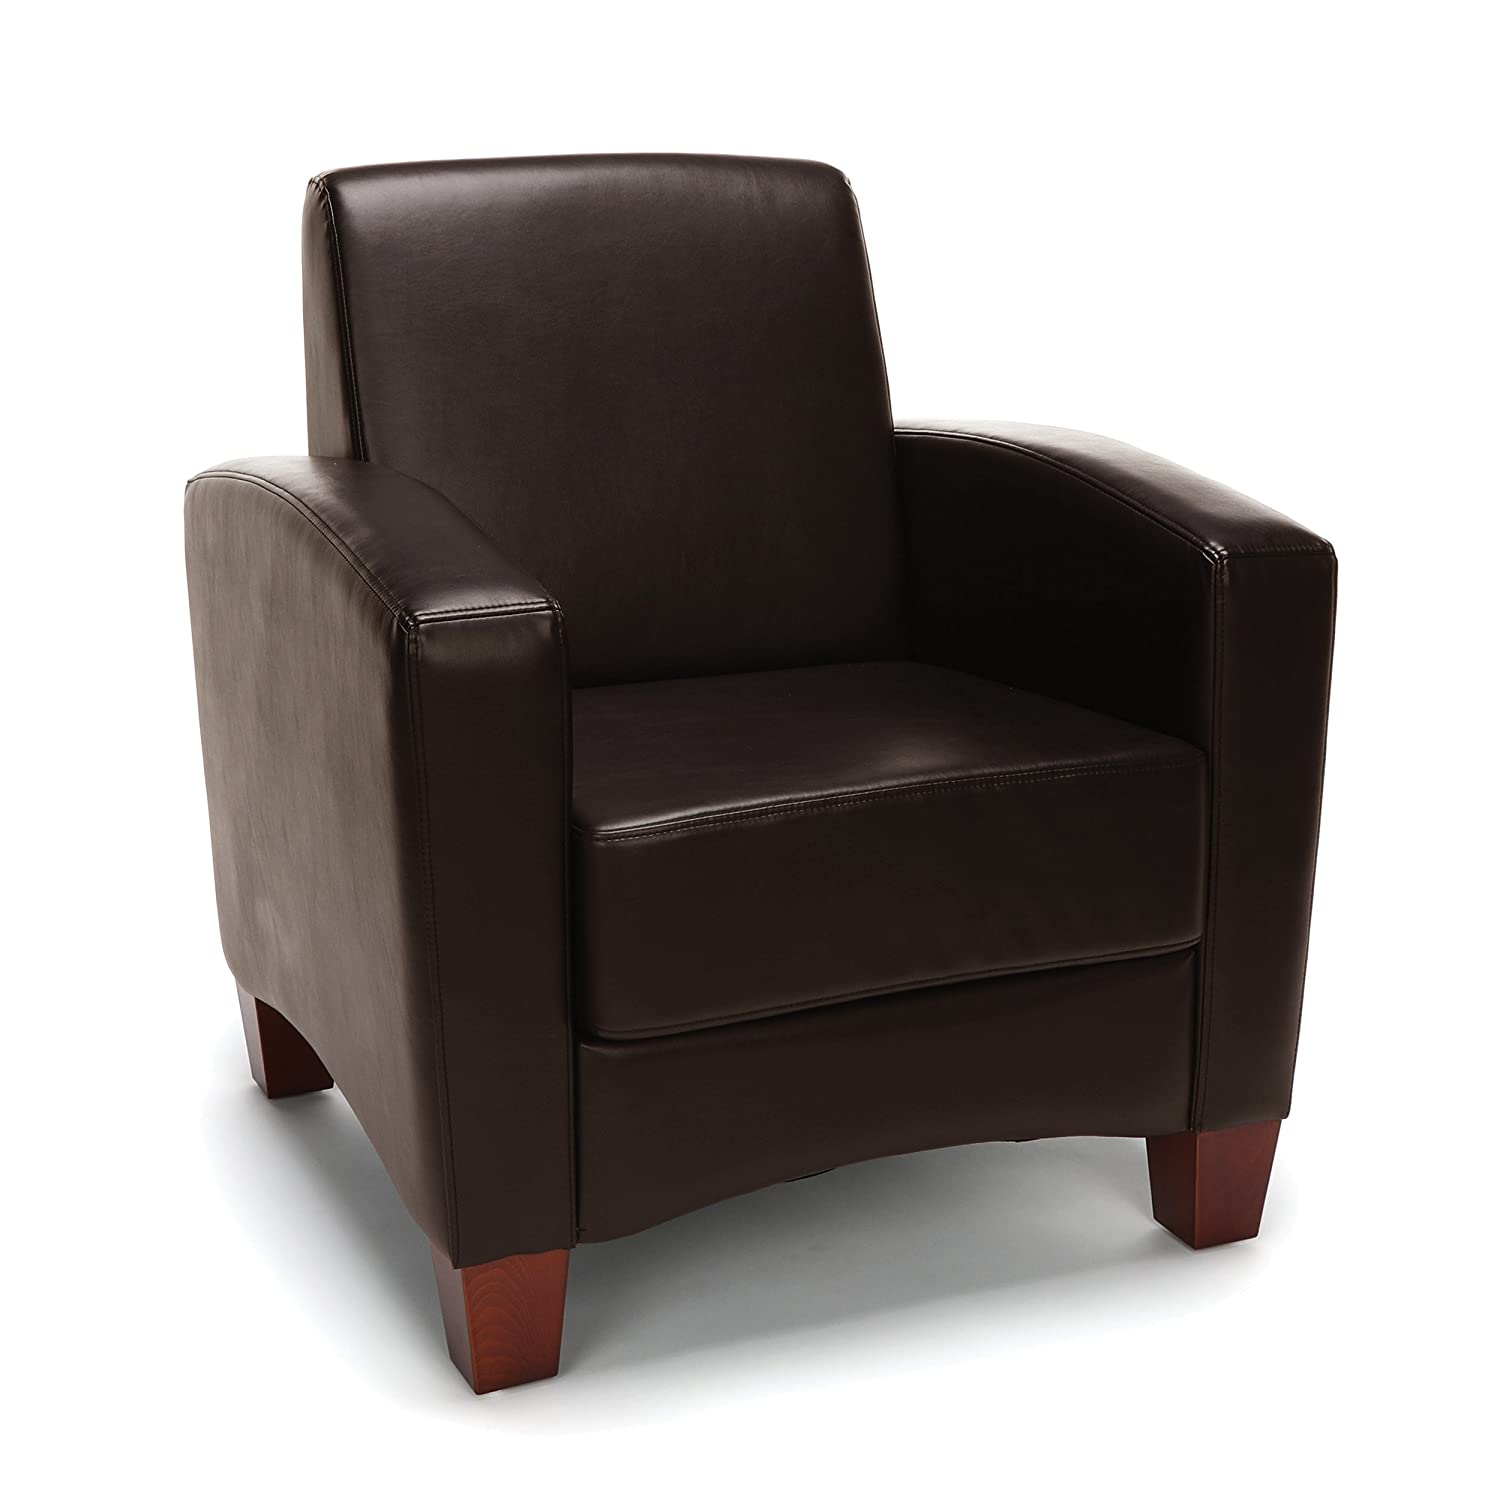 Excellent Details About Contemporary Design Brown Leather Reception Area Side Chair Waiting Room Chair Gmtry Best Dining Table And Chair Ideas Images Gmtryco